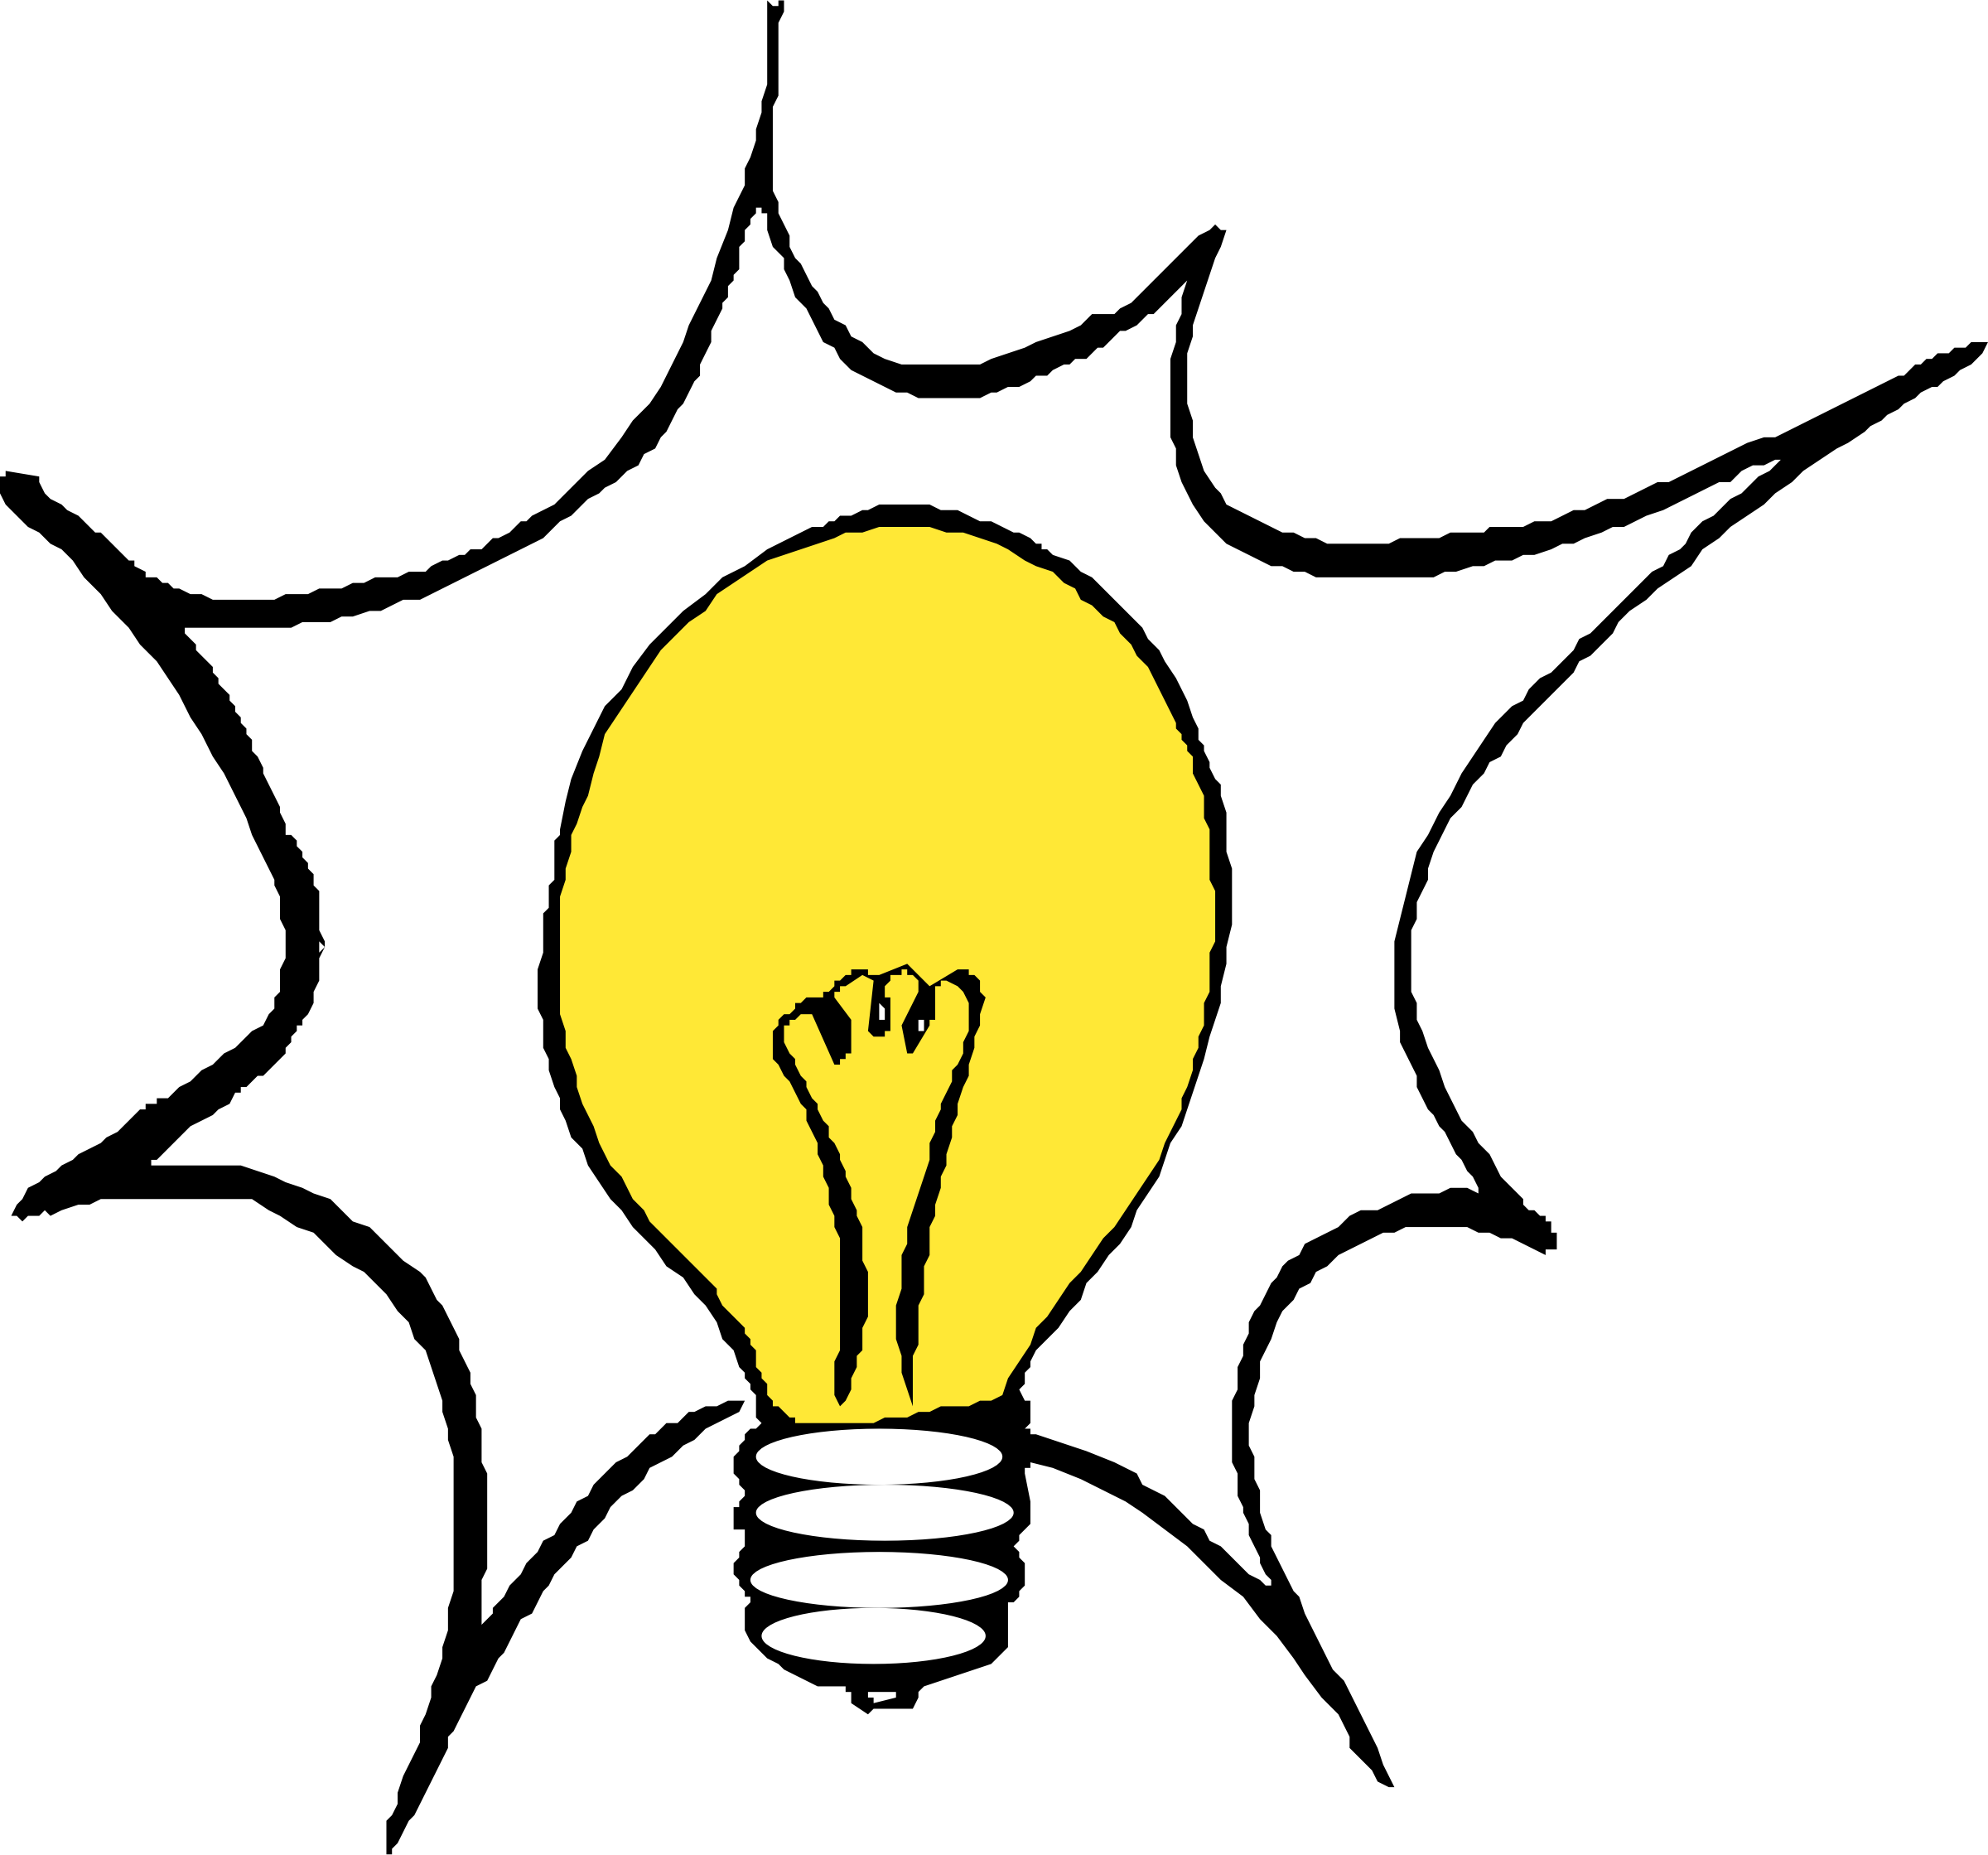 Light bulb 3 by liftarn